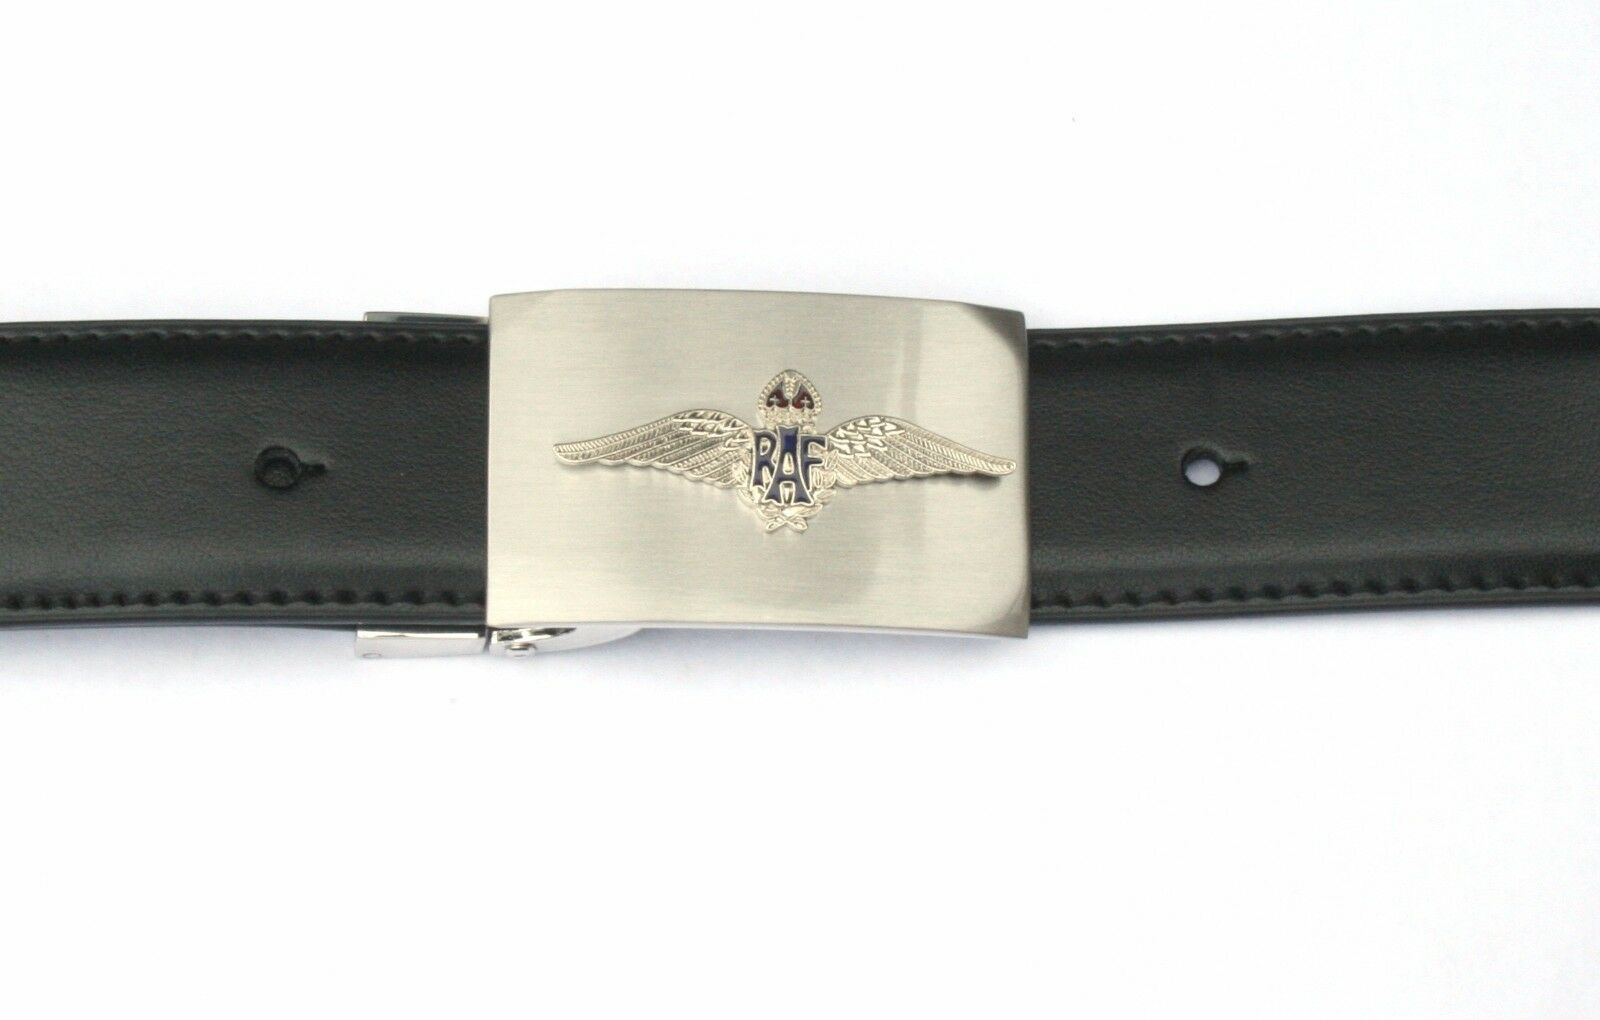 RAF Wings Royal Air Force British Buckle and Belt Set Black Leather Gift